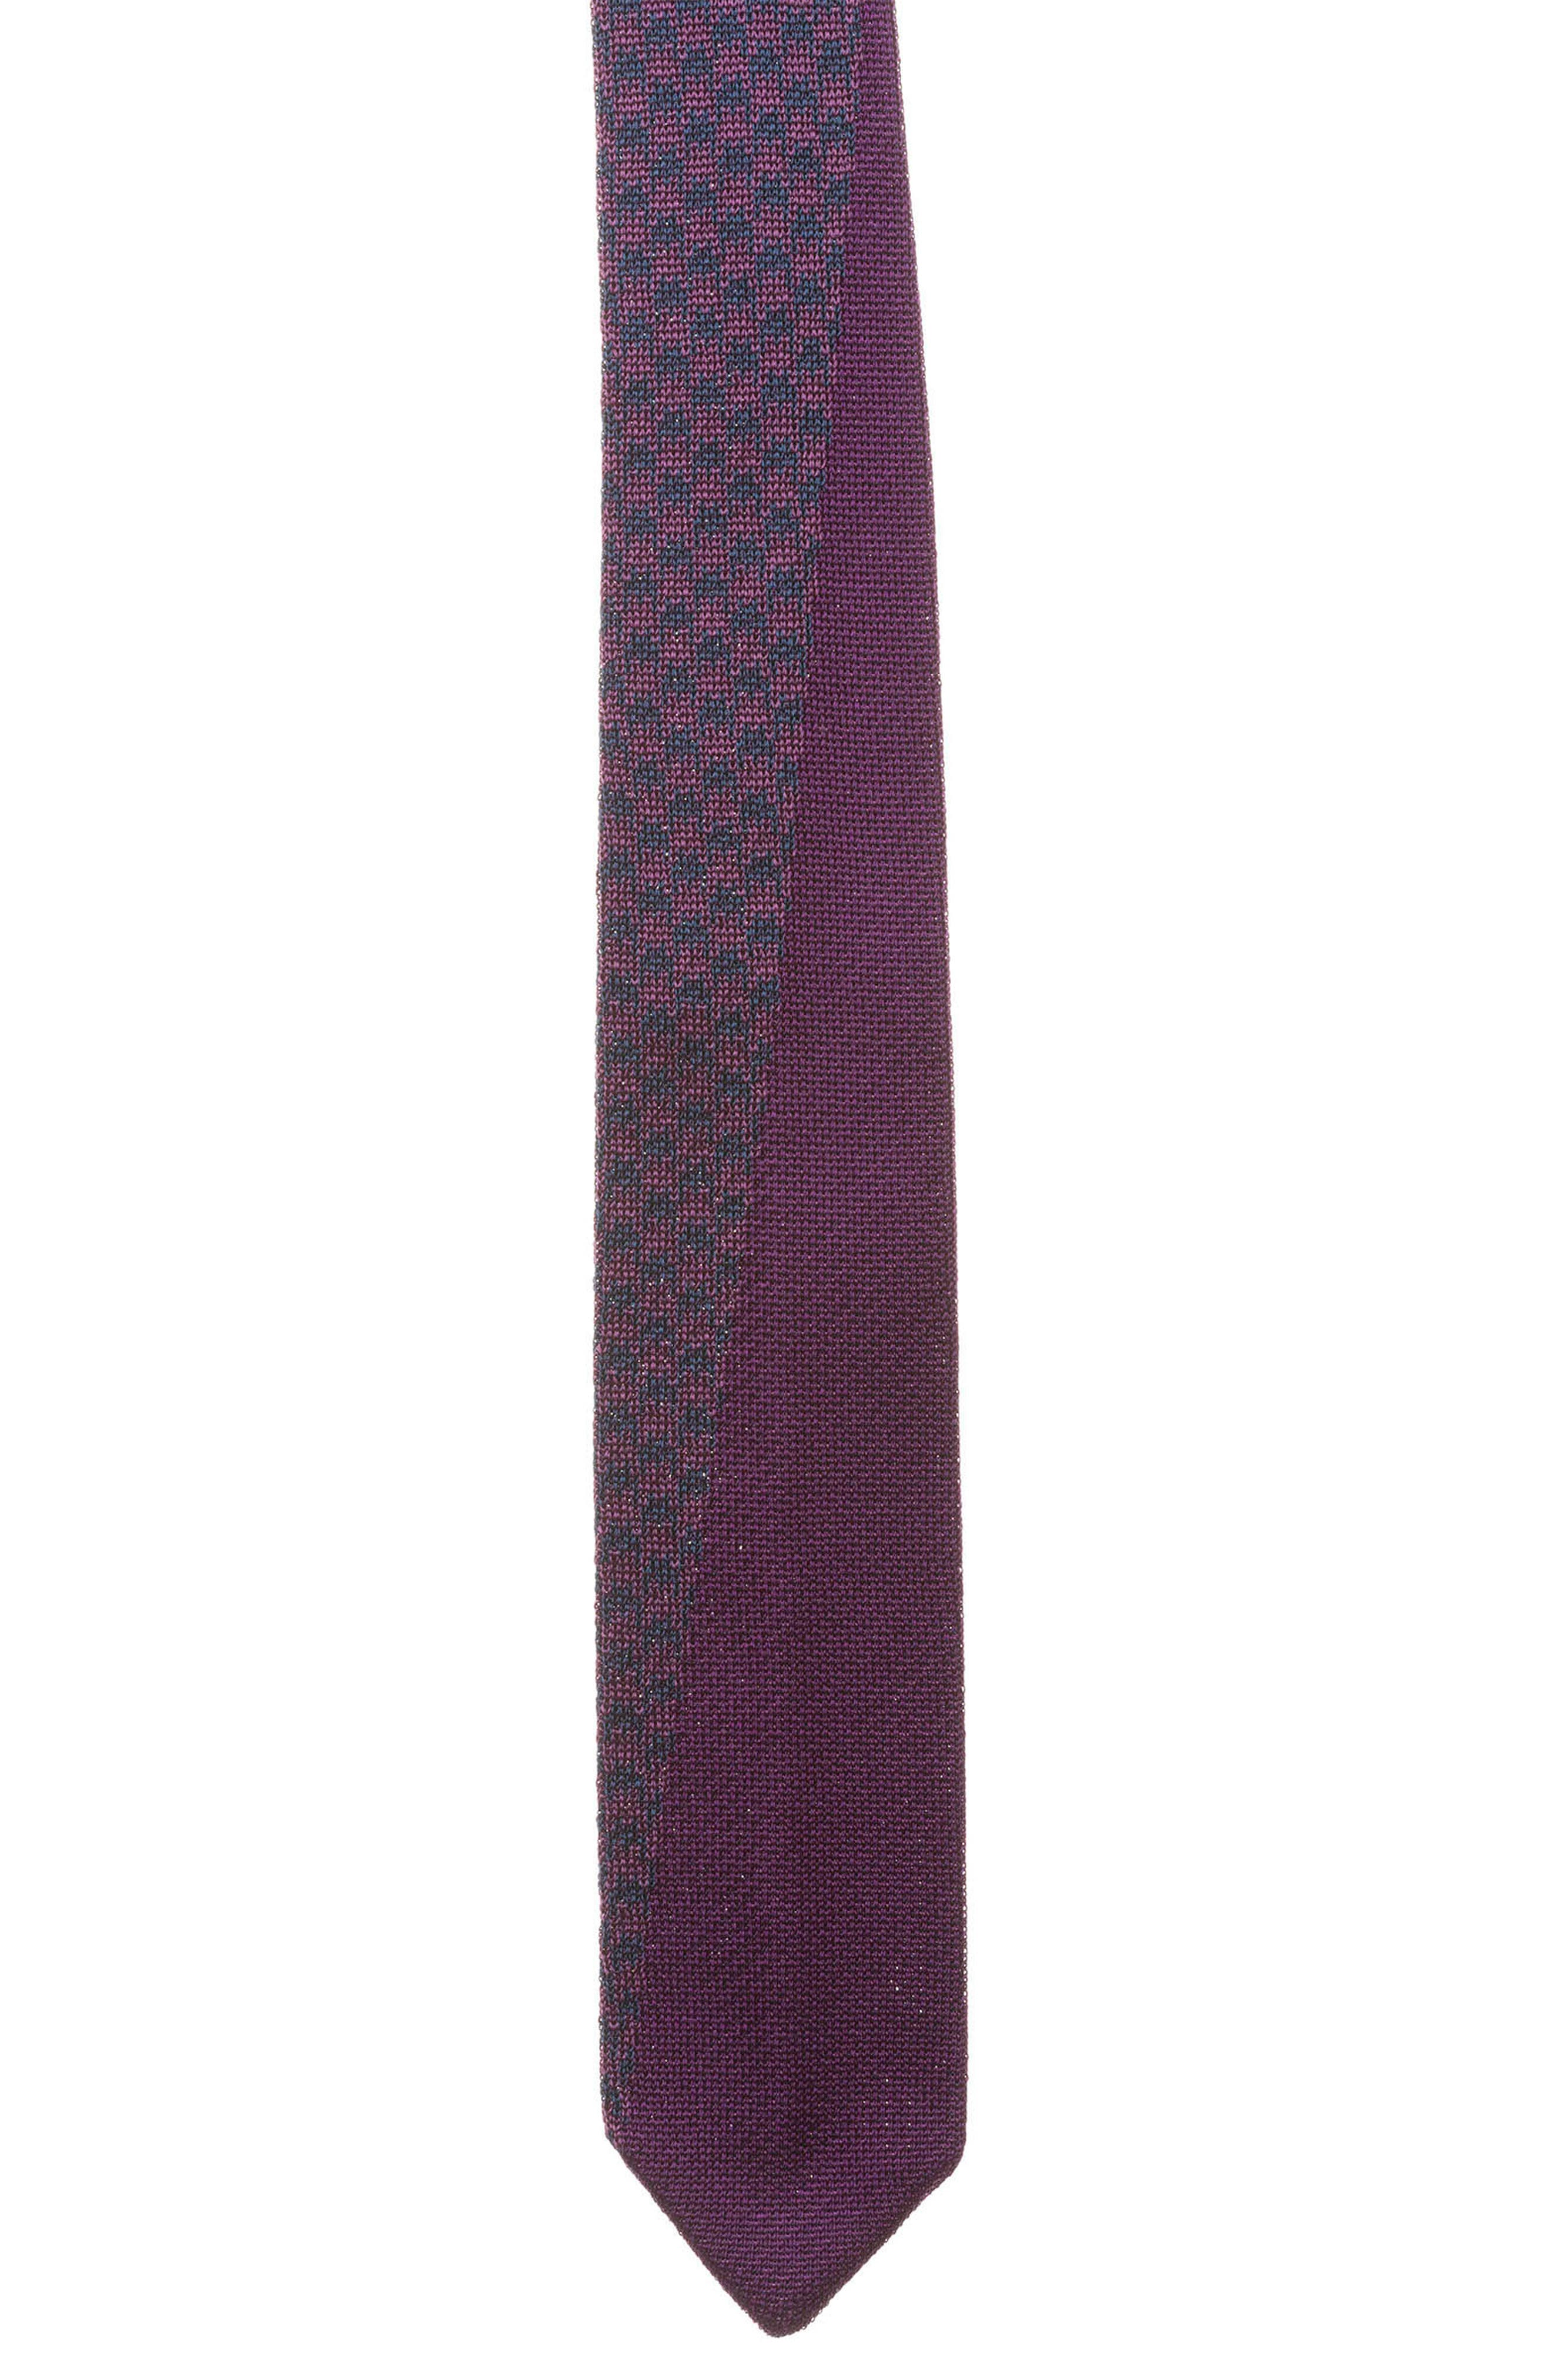 hook + ALBERT Knit Silk Tie